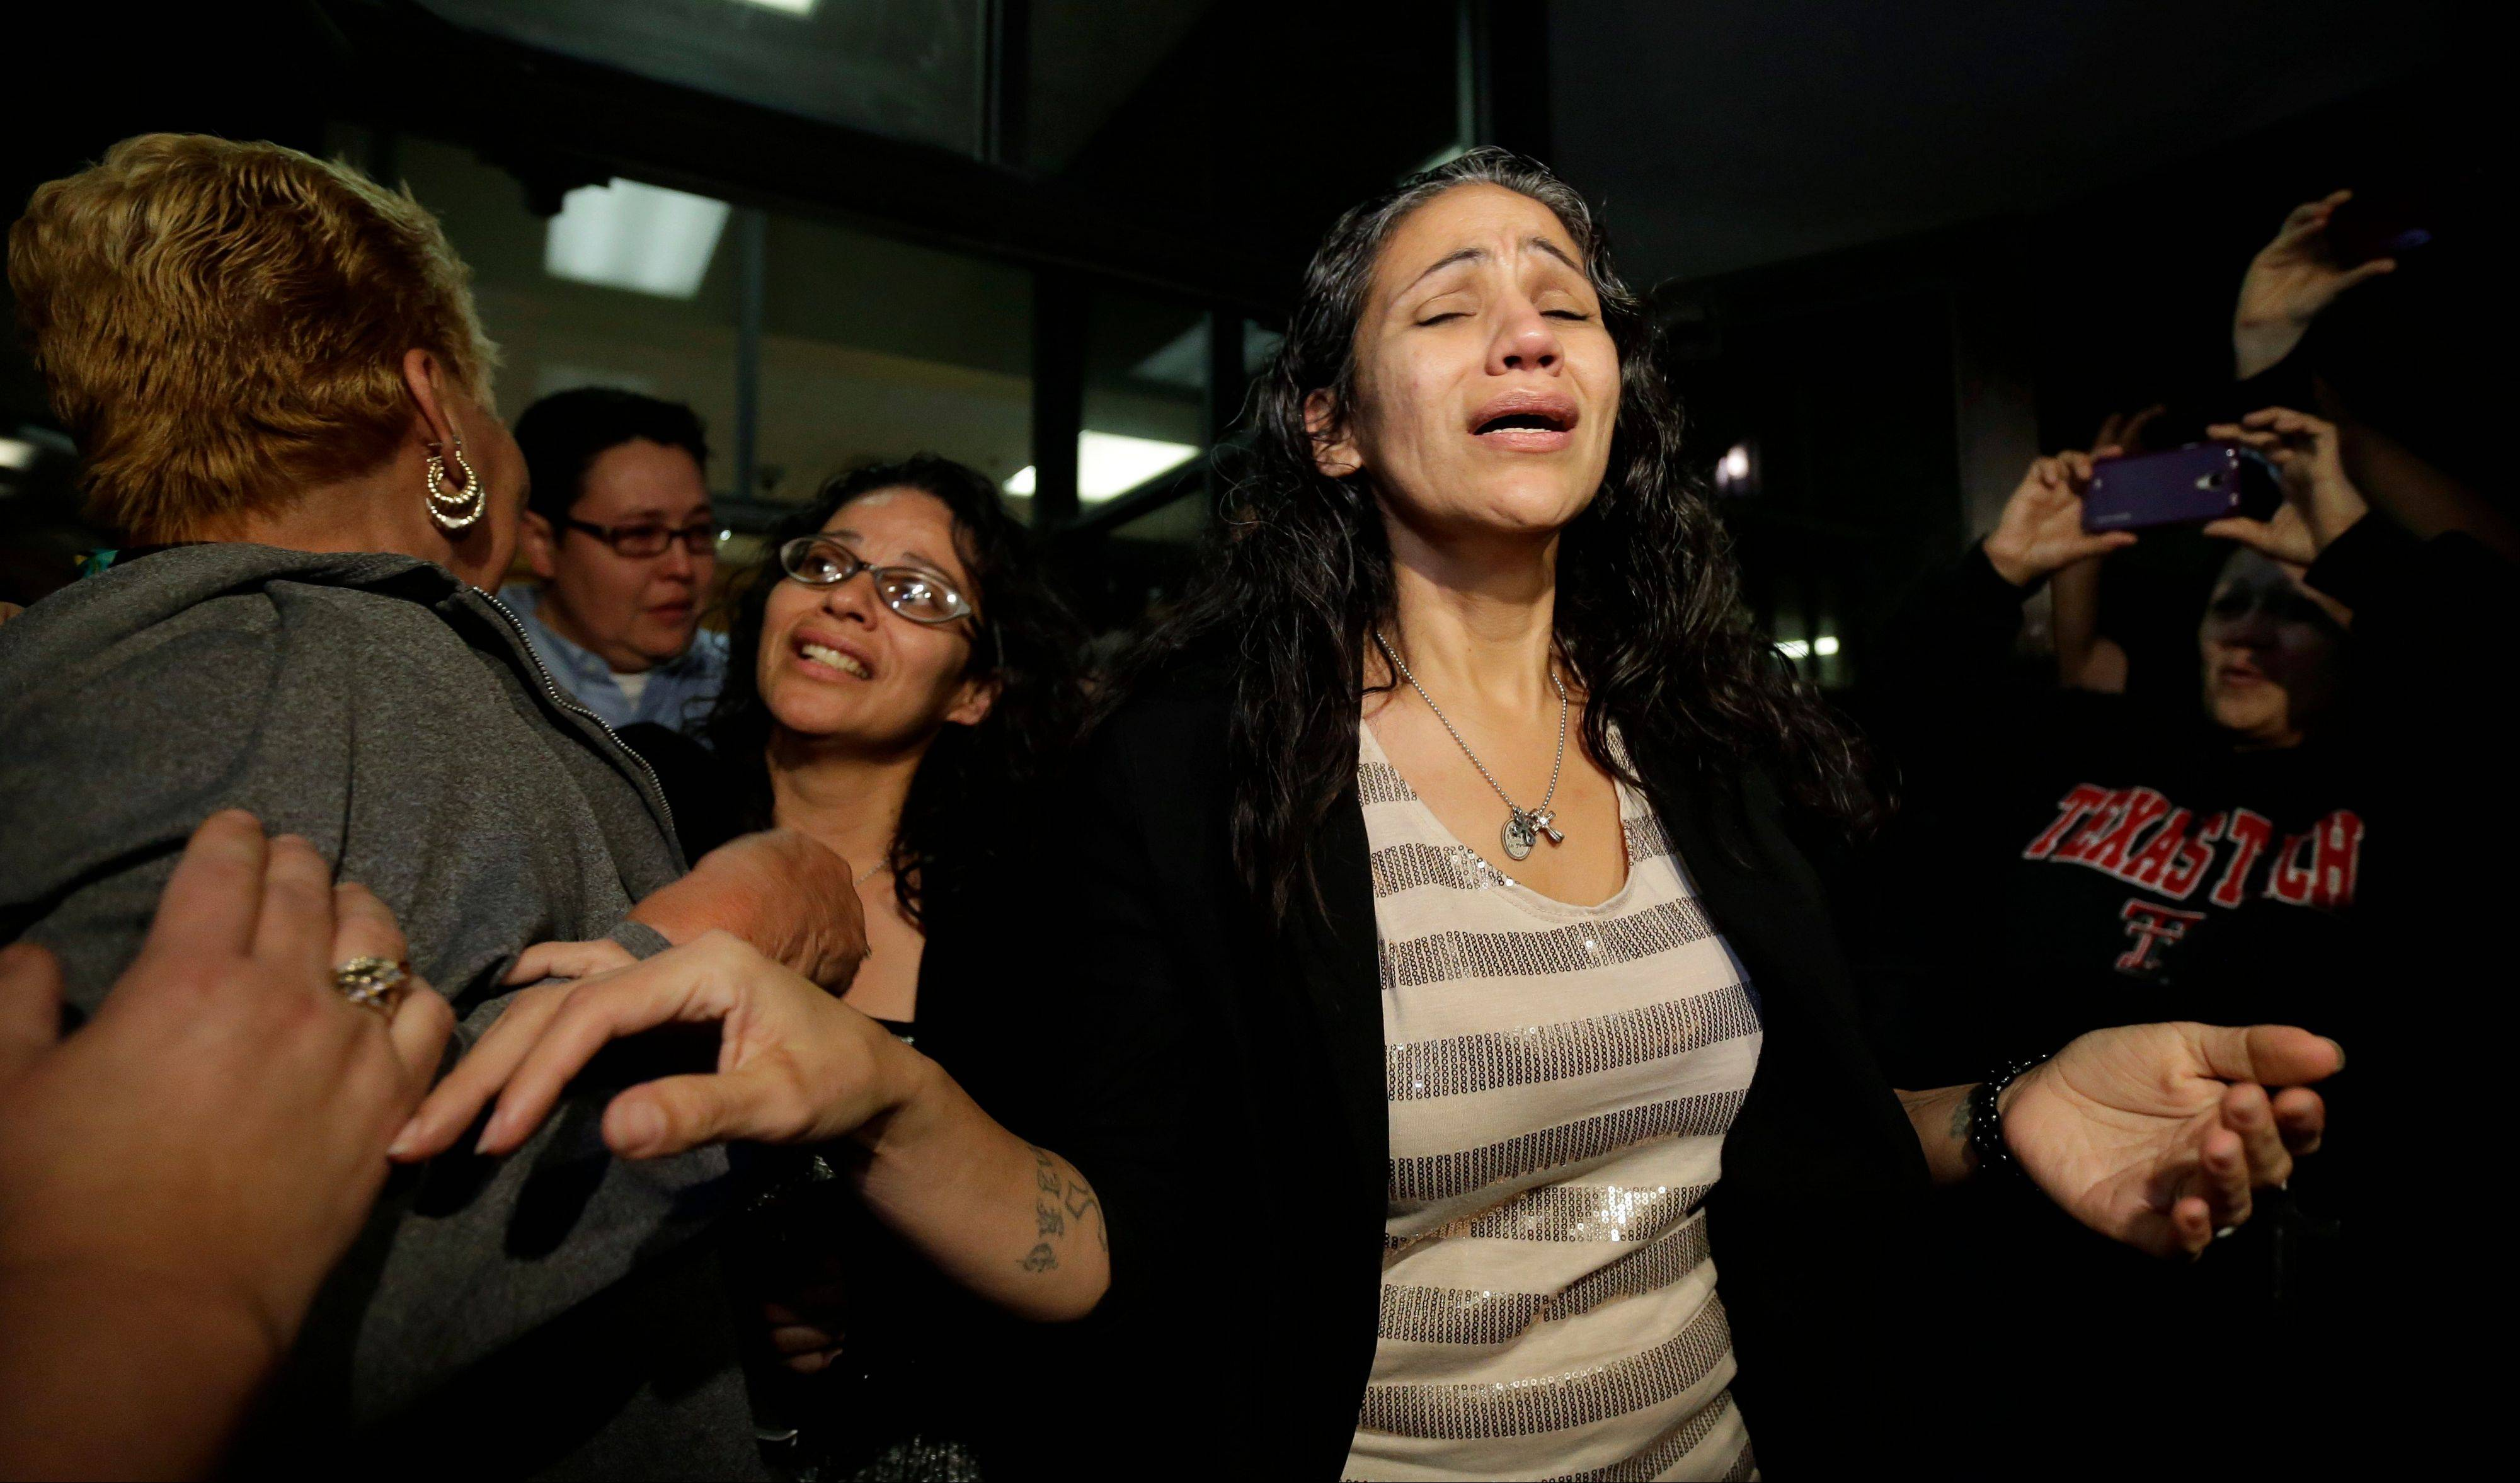 Cassandra Rivera, center, followed by Elizabeth Ramirez and Kristie Mayhugh are greeted by family Monday as they leave the Bexar County Jail in San Antonio. A judge decided to recommend that an appeals court vacate their 1998 convictions as tainted by faulty witness testimony.